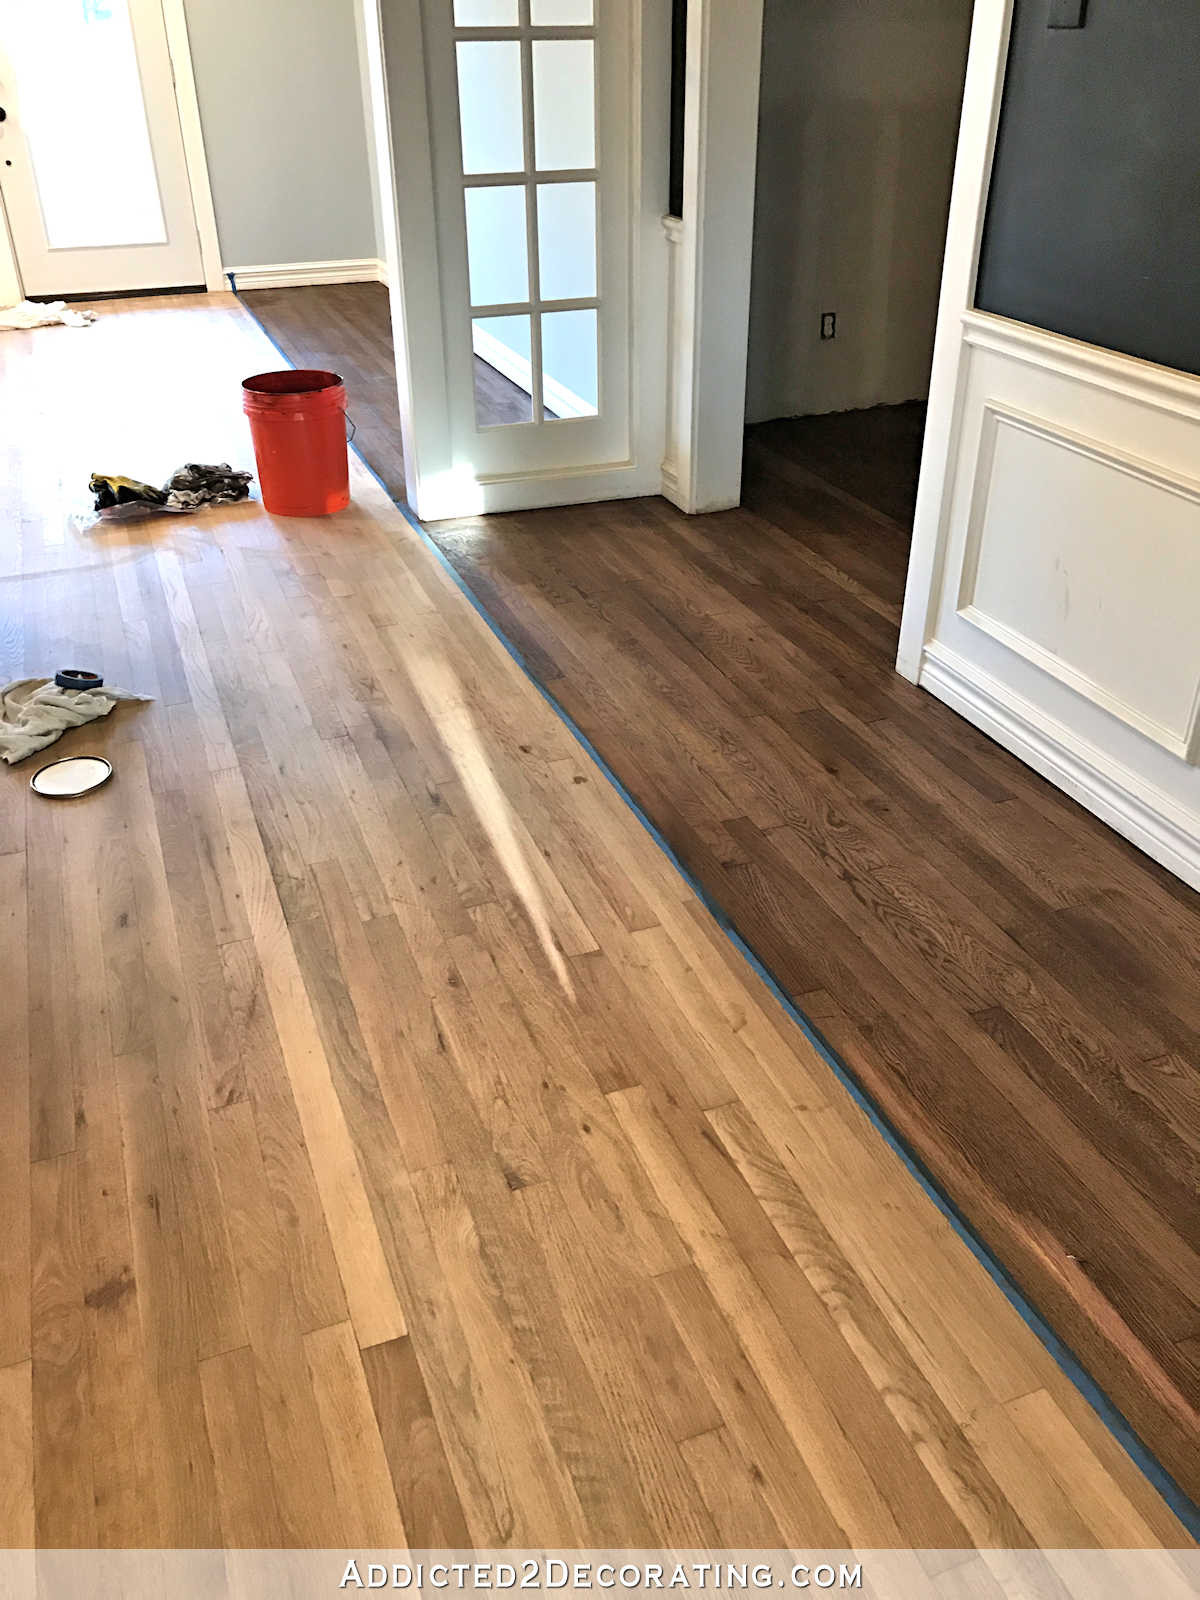 unfinished oak hardwood flooring cost of adventures in staining my red oak hardwood floors products process pertaining to staining red oak hardwood floors 6 stain on partial floor in entryway and music